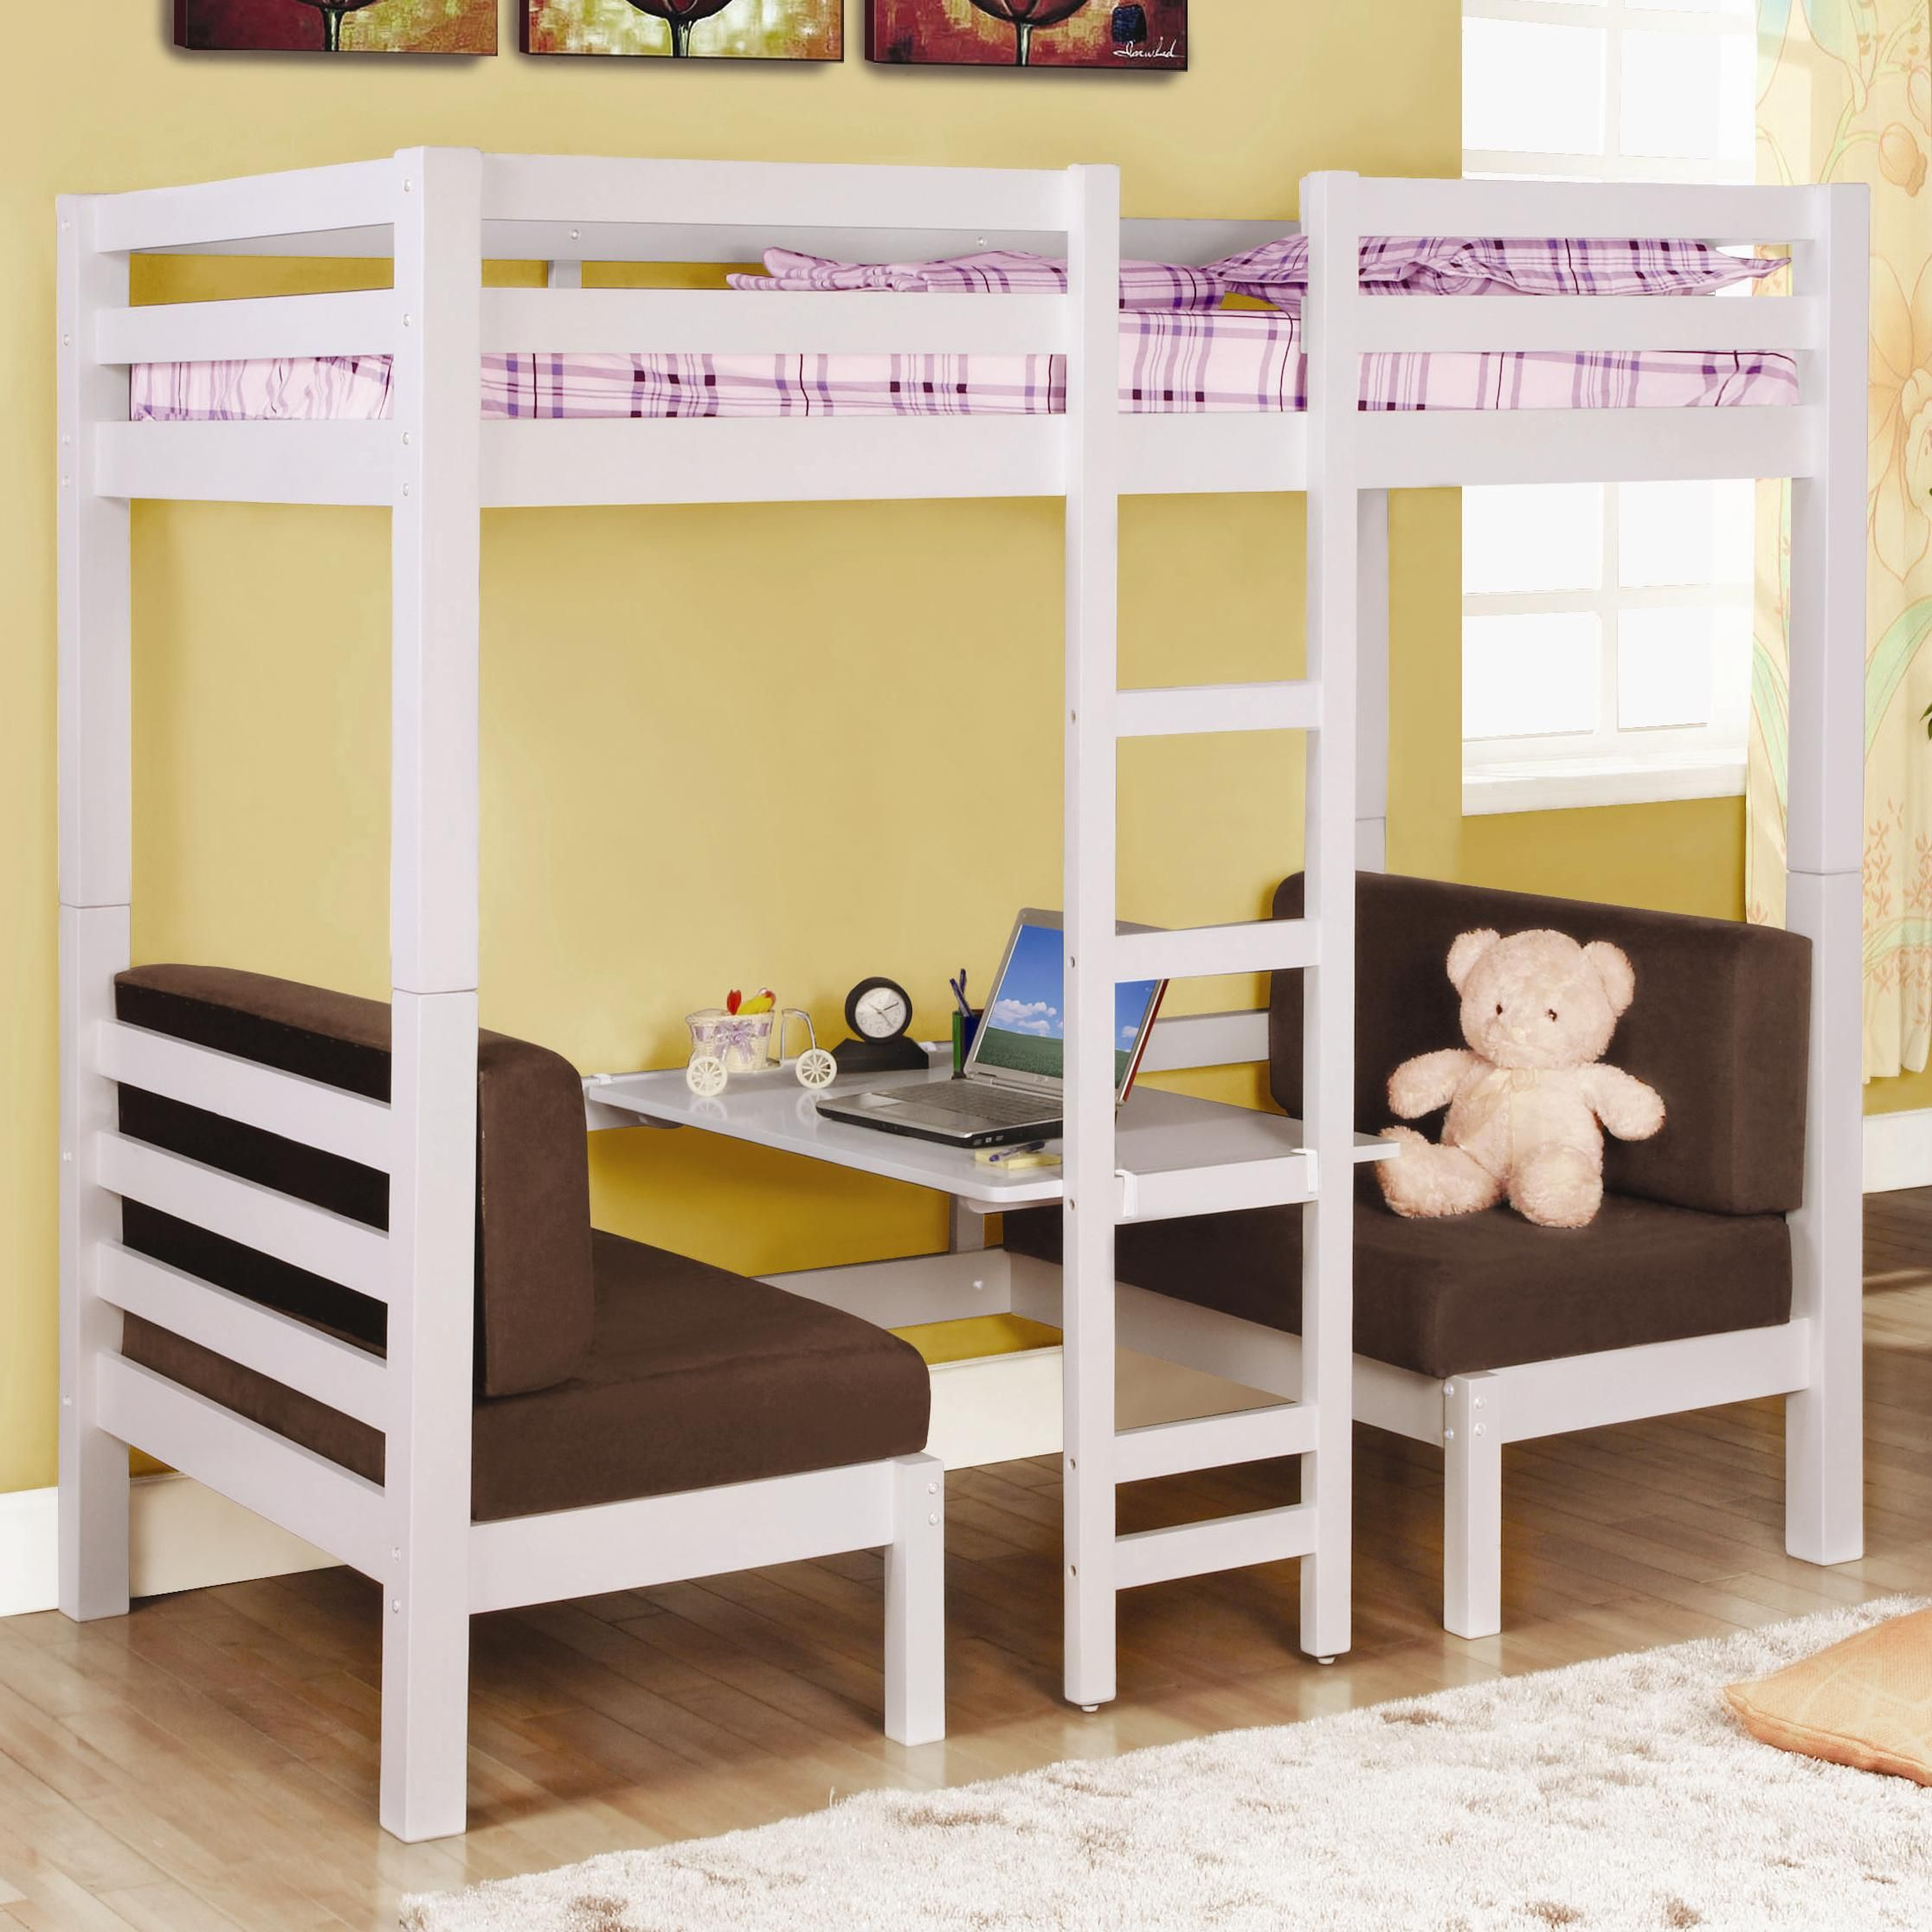 Bedroom loft for teens - Loft Bed For Teen 1000 Images About Kid39s Room On Pinterest Loft Beds Kid Loft Beds